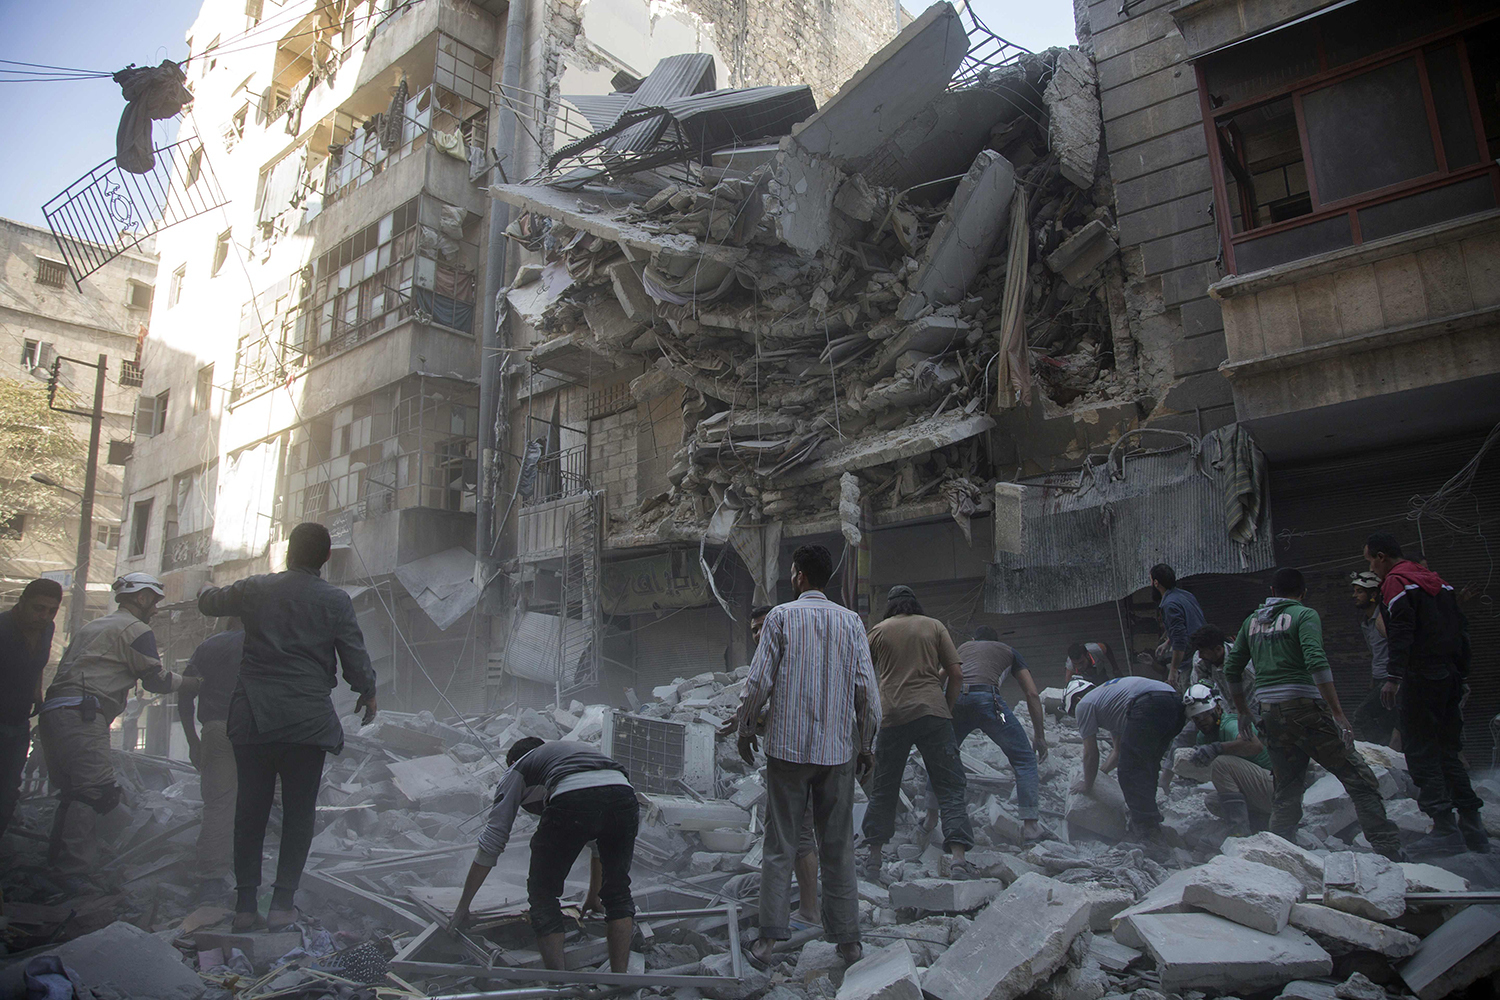 TOPSHOT - Syrian civilians and rescuers gather at site of government forces air strikes in the rebel held neighbourhood of Al-Shaar in Aleppo on September 27, 2016. Syria's army took control of a rebel-held district in central Aleppo, after days of heavy air strikes that have killed dozens and sparked allegations of war crimes. / AFP PHOTO / KARAM AL-MASRI / TT / kod 444